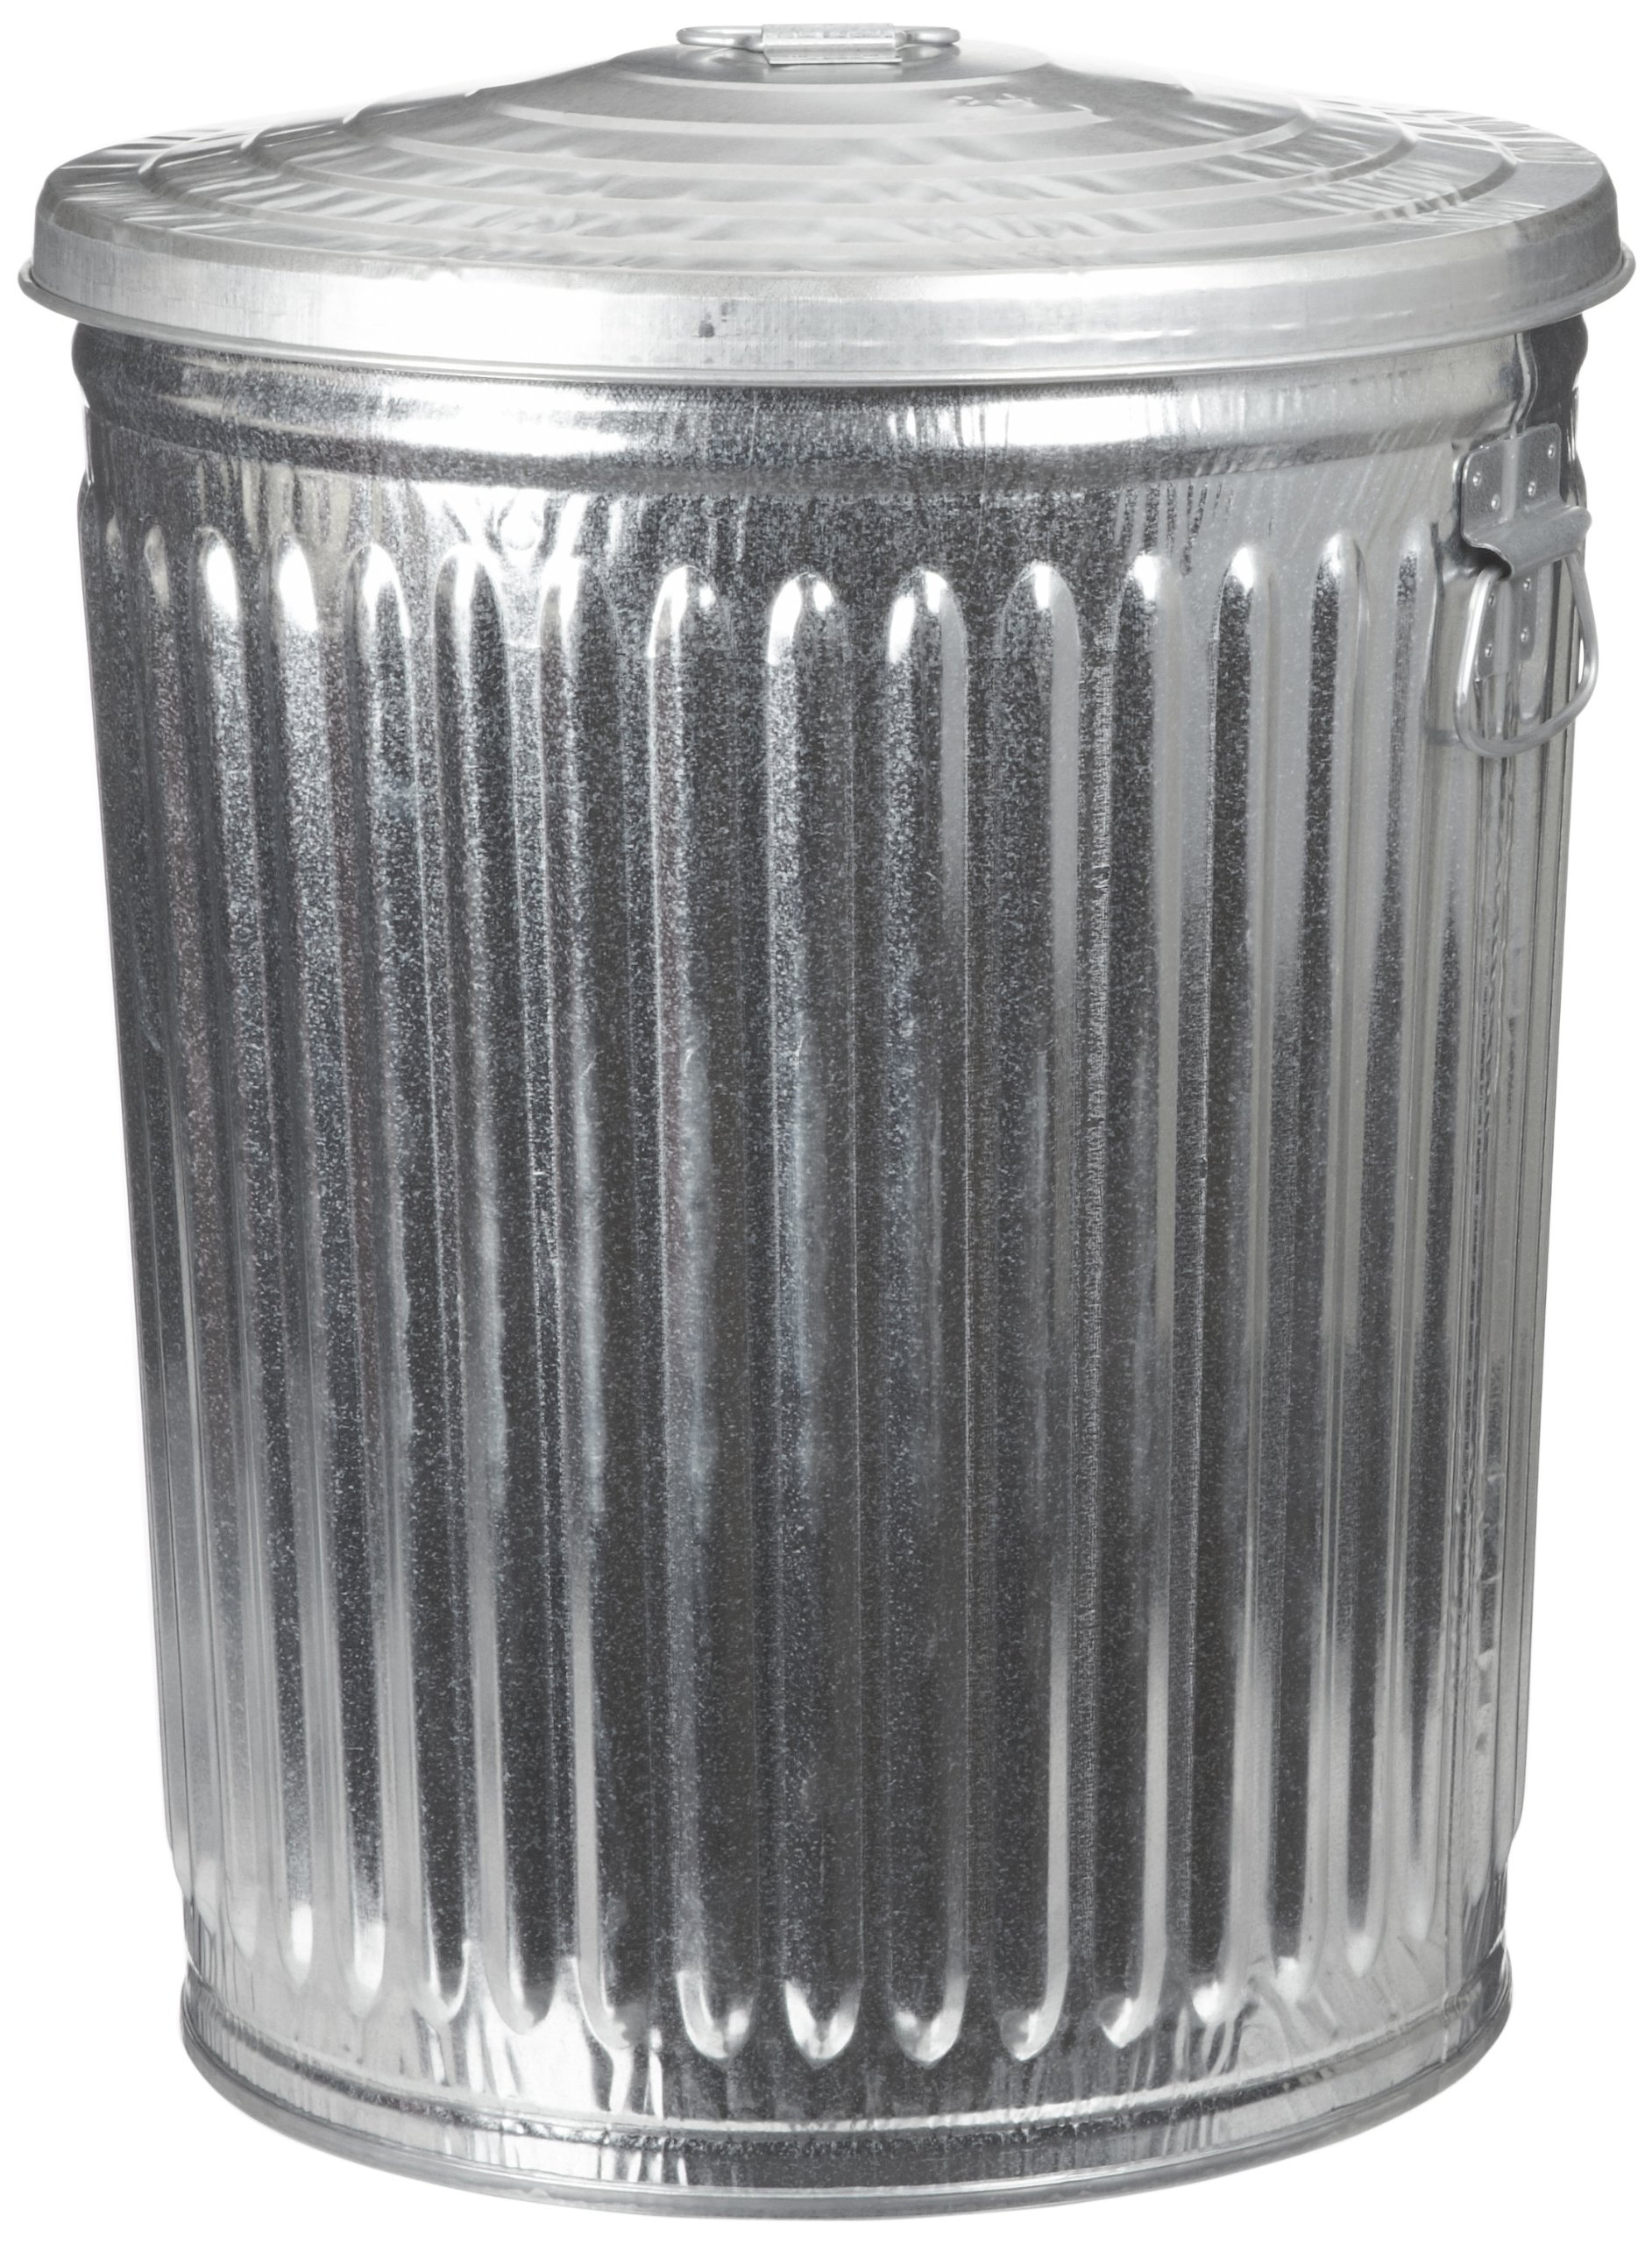 Witt Industries WCD32CL Galvanized Steel 32-Gallon Light Duty Trash Can with Lid, Round, 21-1/4'' Diameter x 27-1/2'' Height by Witt Industries